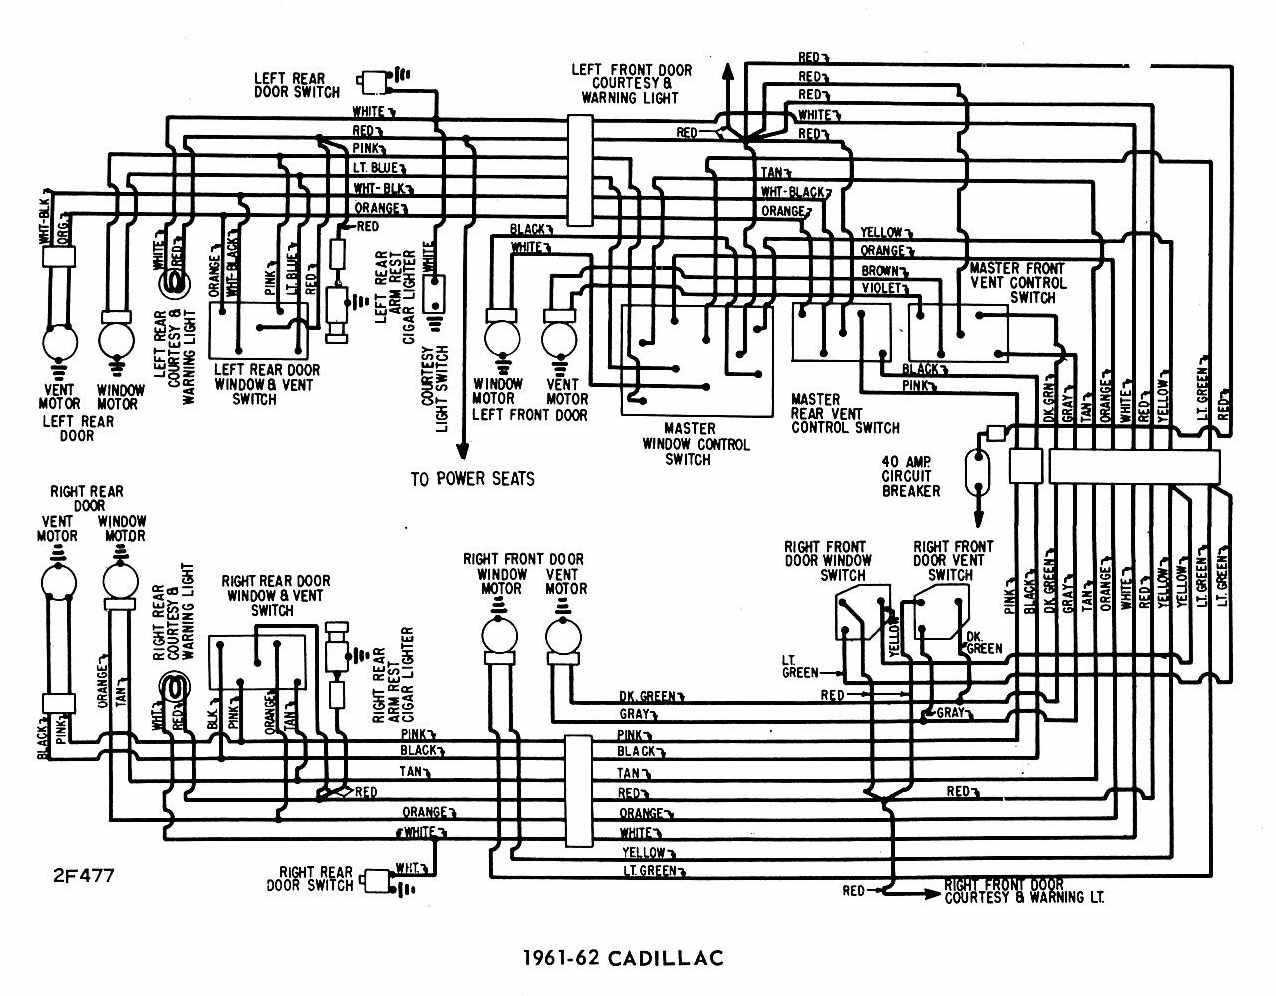 Cadillac 1961 1962 Windows Wiring on 1975 ford truck ignition wiring diagram